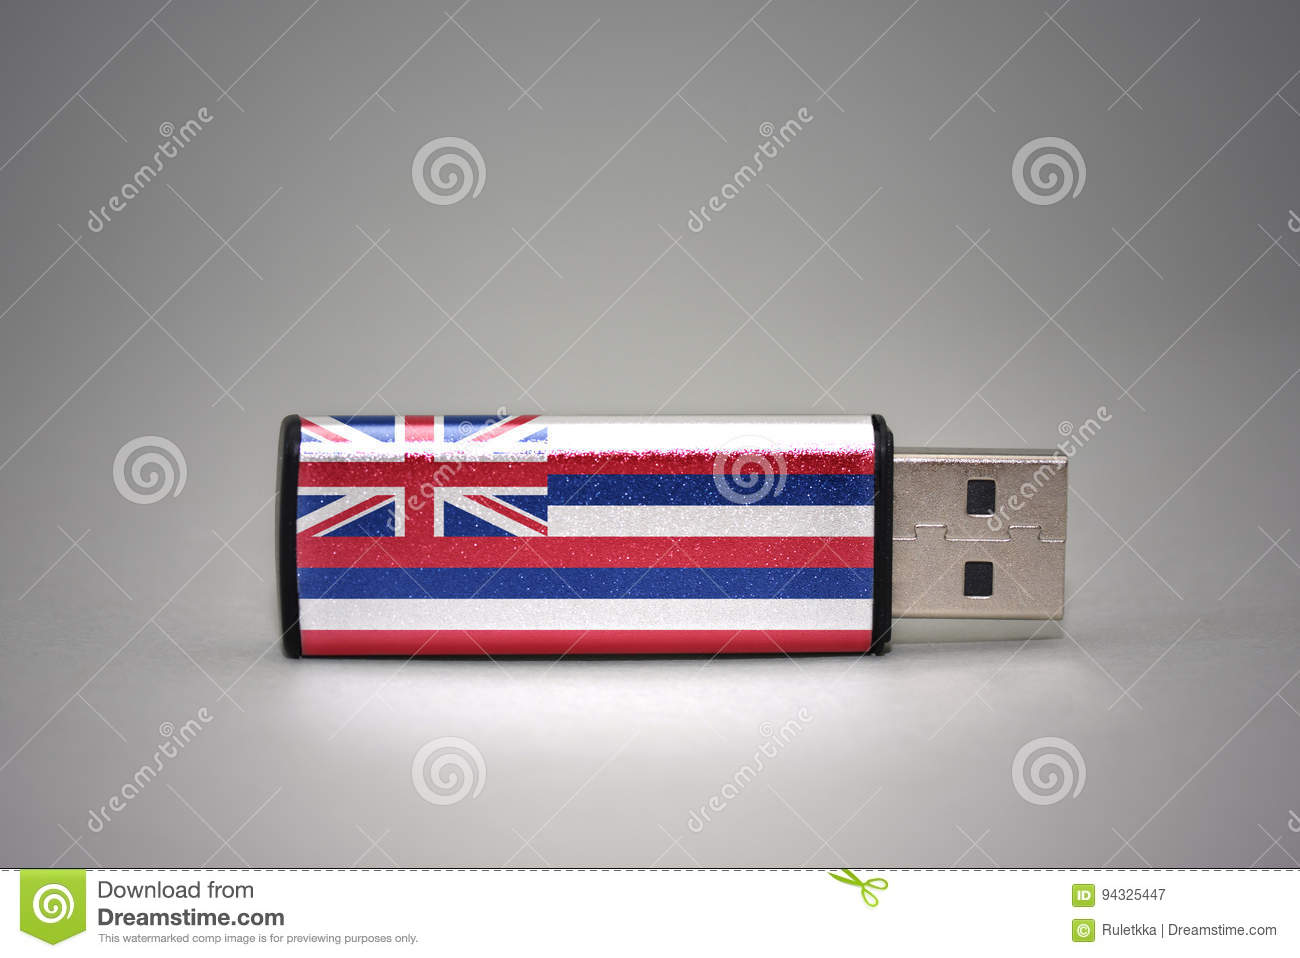 Usb flash drive with the hawaii state flag on gray background.